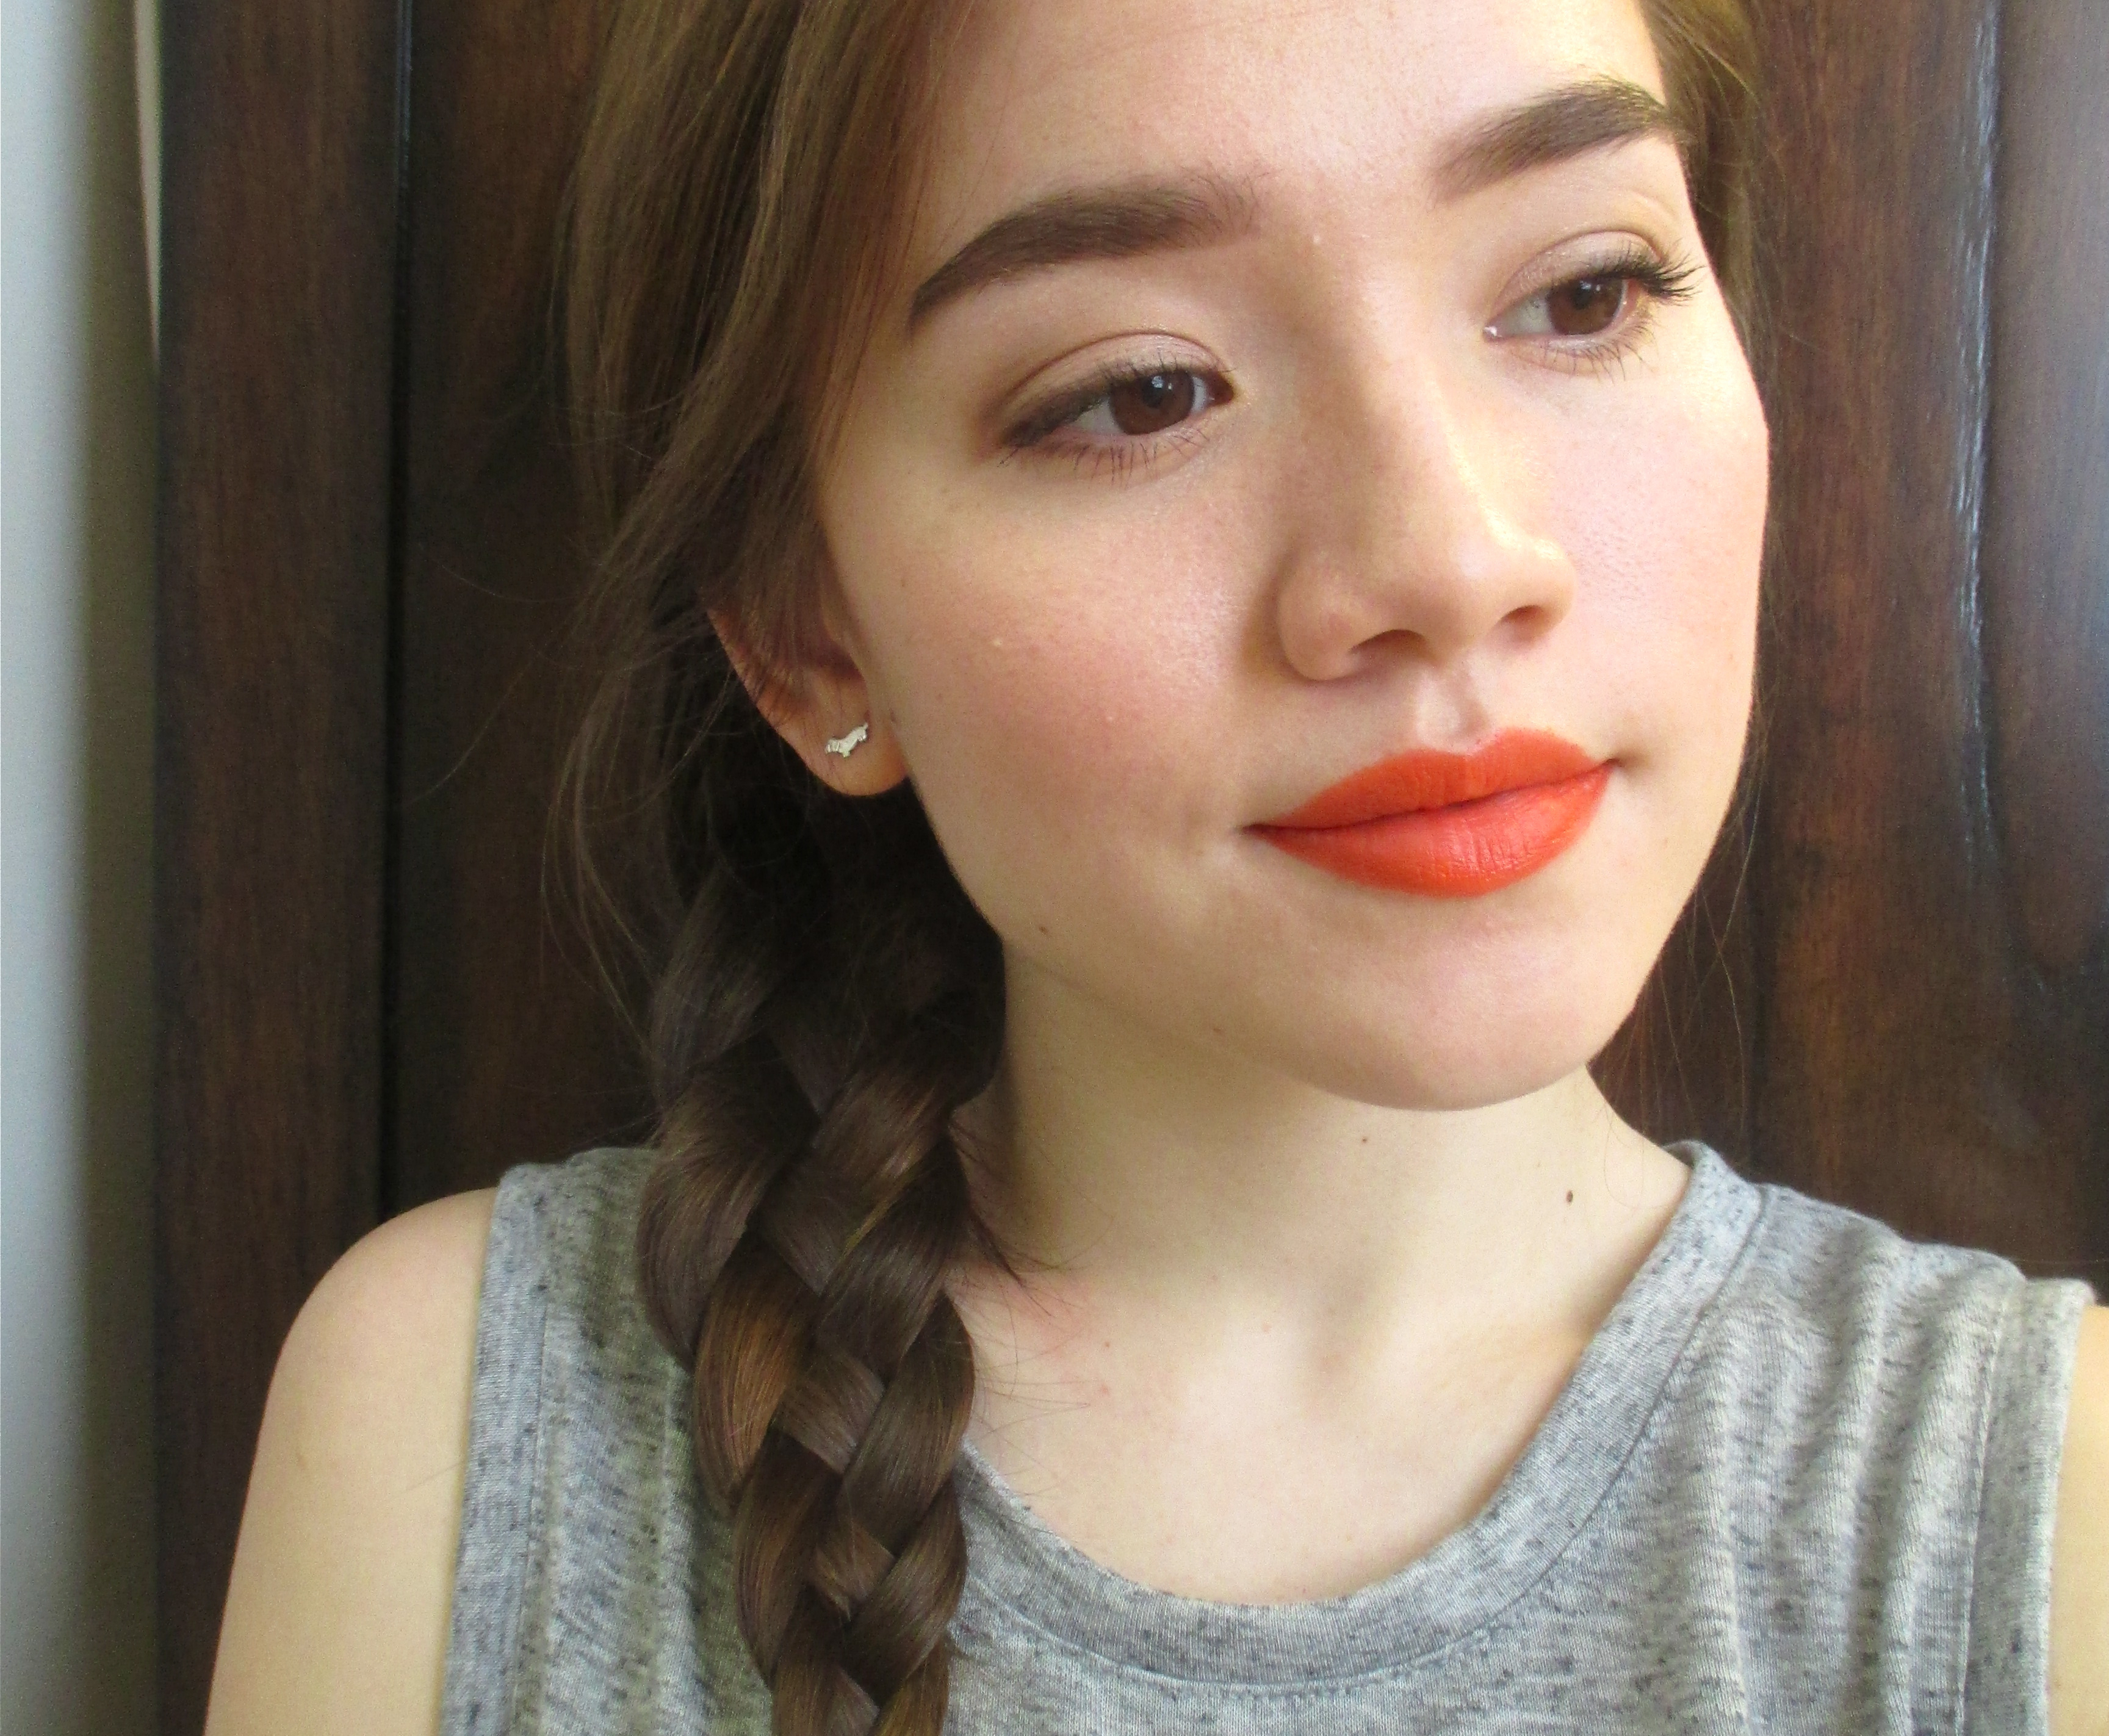 Newest Mermaid Inception Braid Hairstyles Within 10 Simple Ways To Make Any Braid Look Even Cooler So It'll (View 15 of 20)